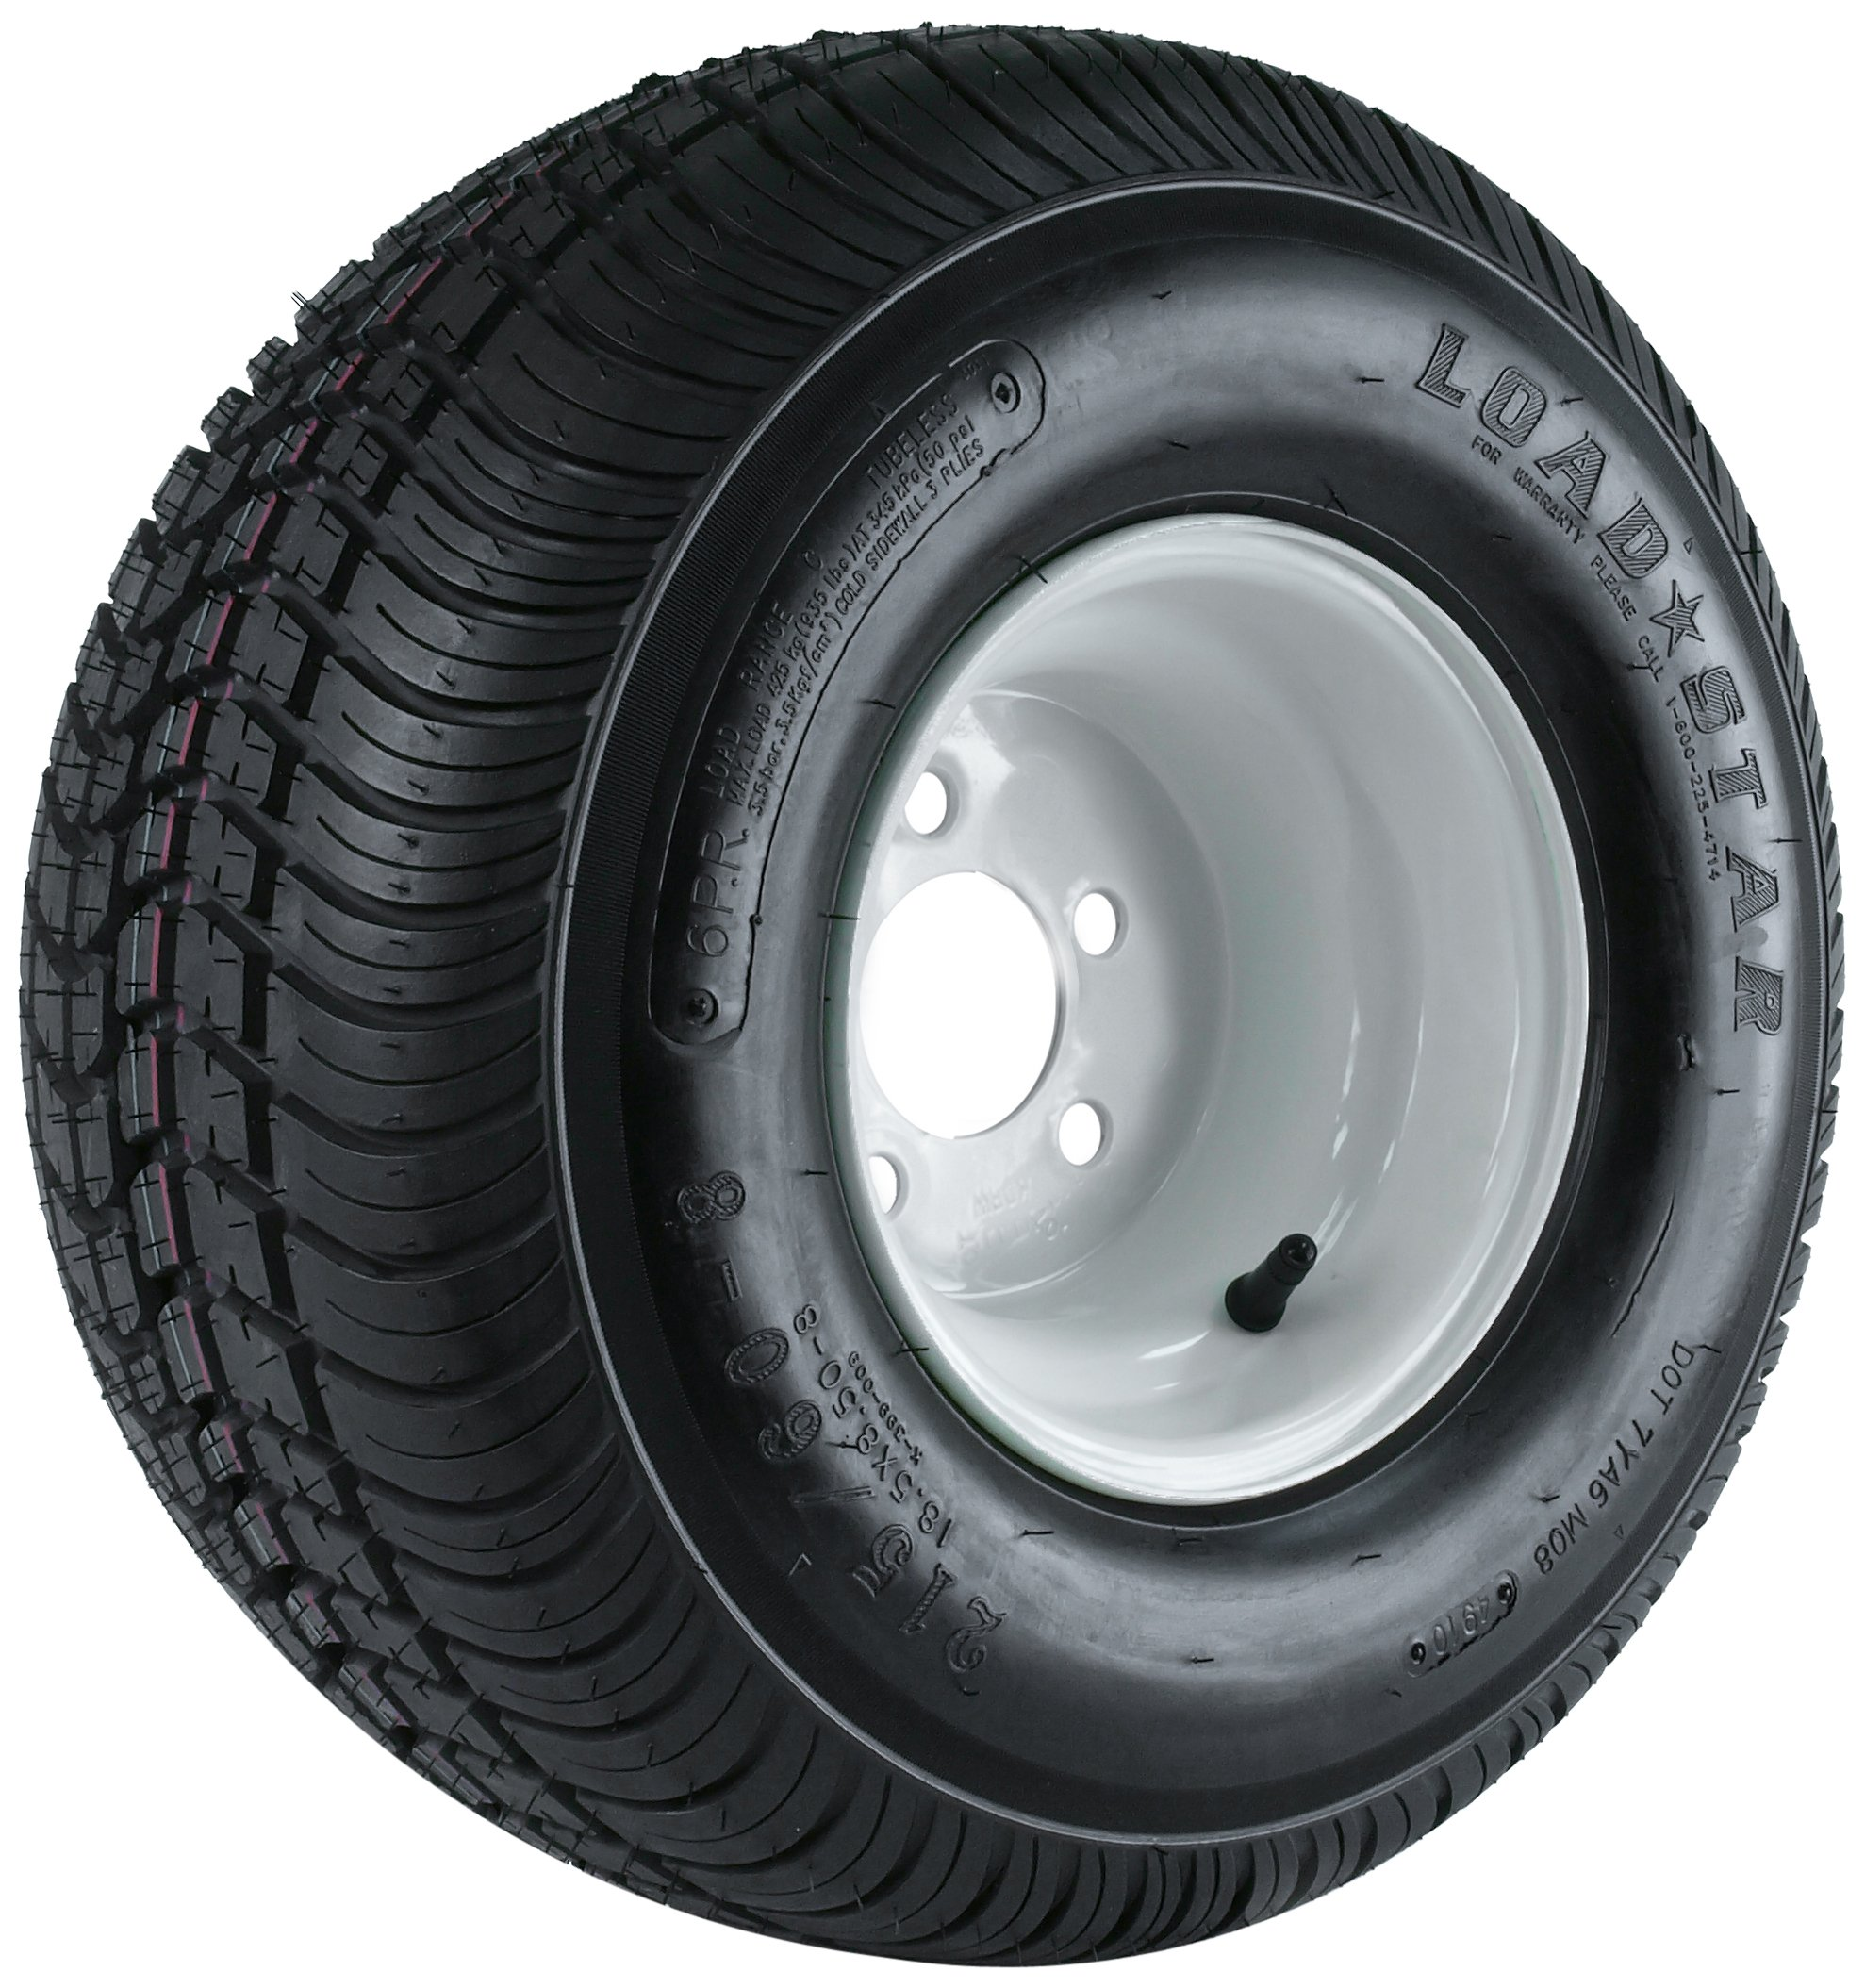 Kenda Loadstar (8x7/5x4.5) Wheel with White Powder-Coat Finish LRC and Trailer Tire Assembly (215/60-8)